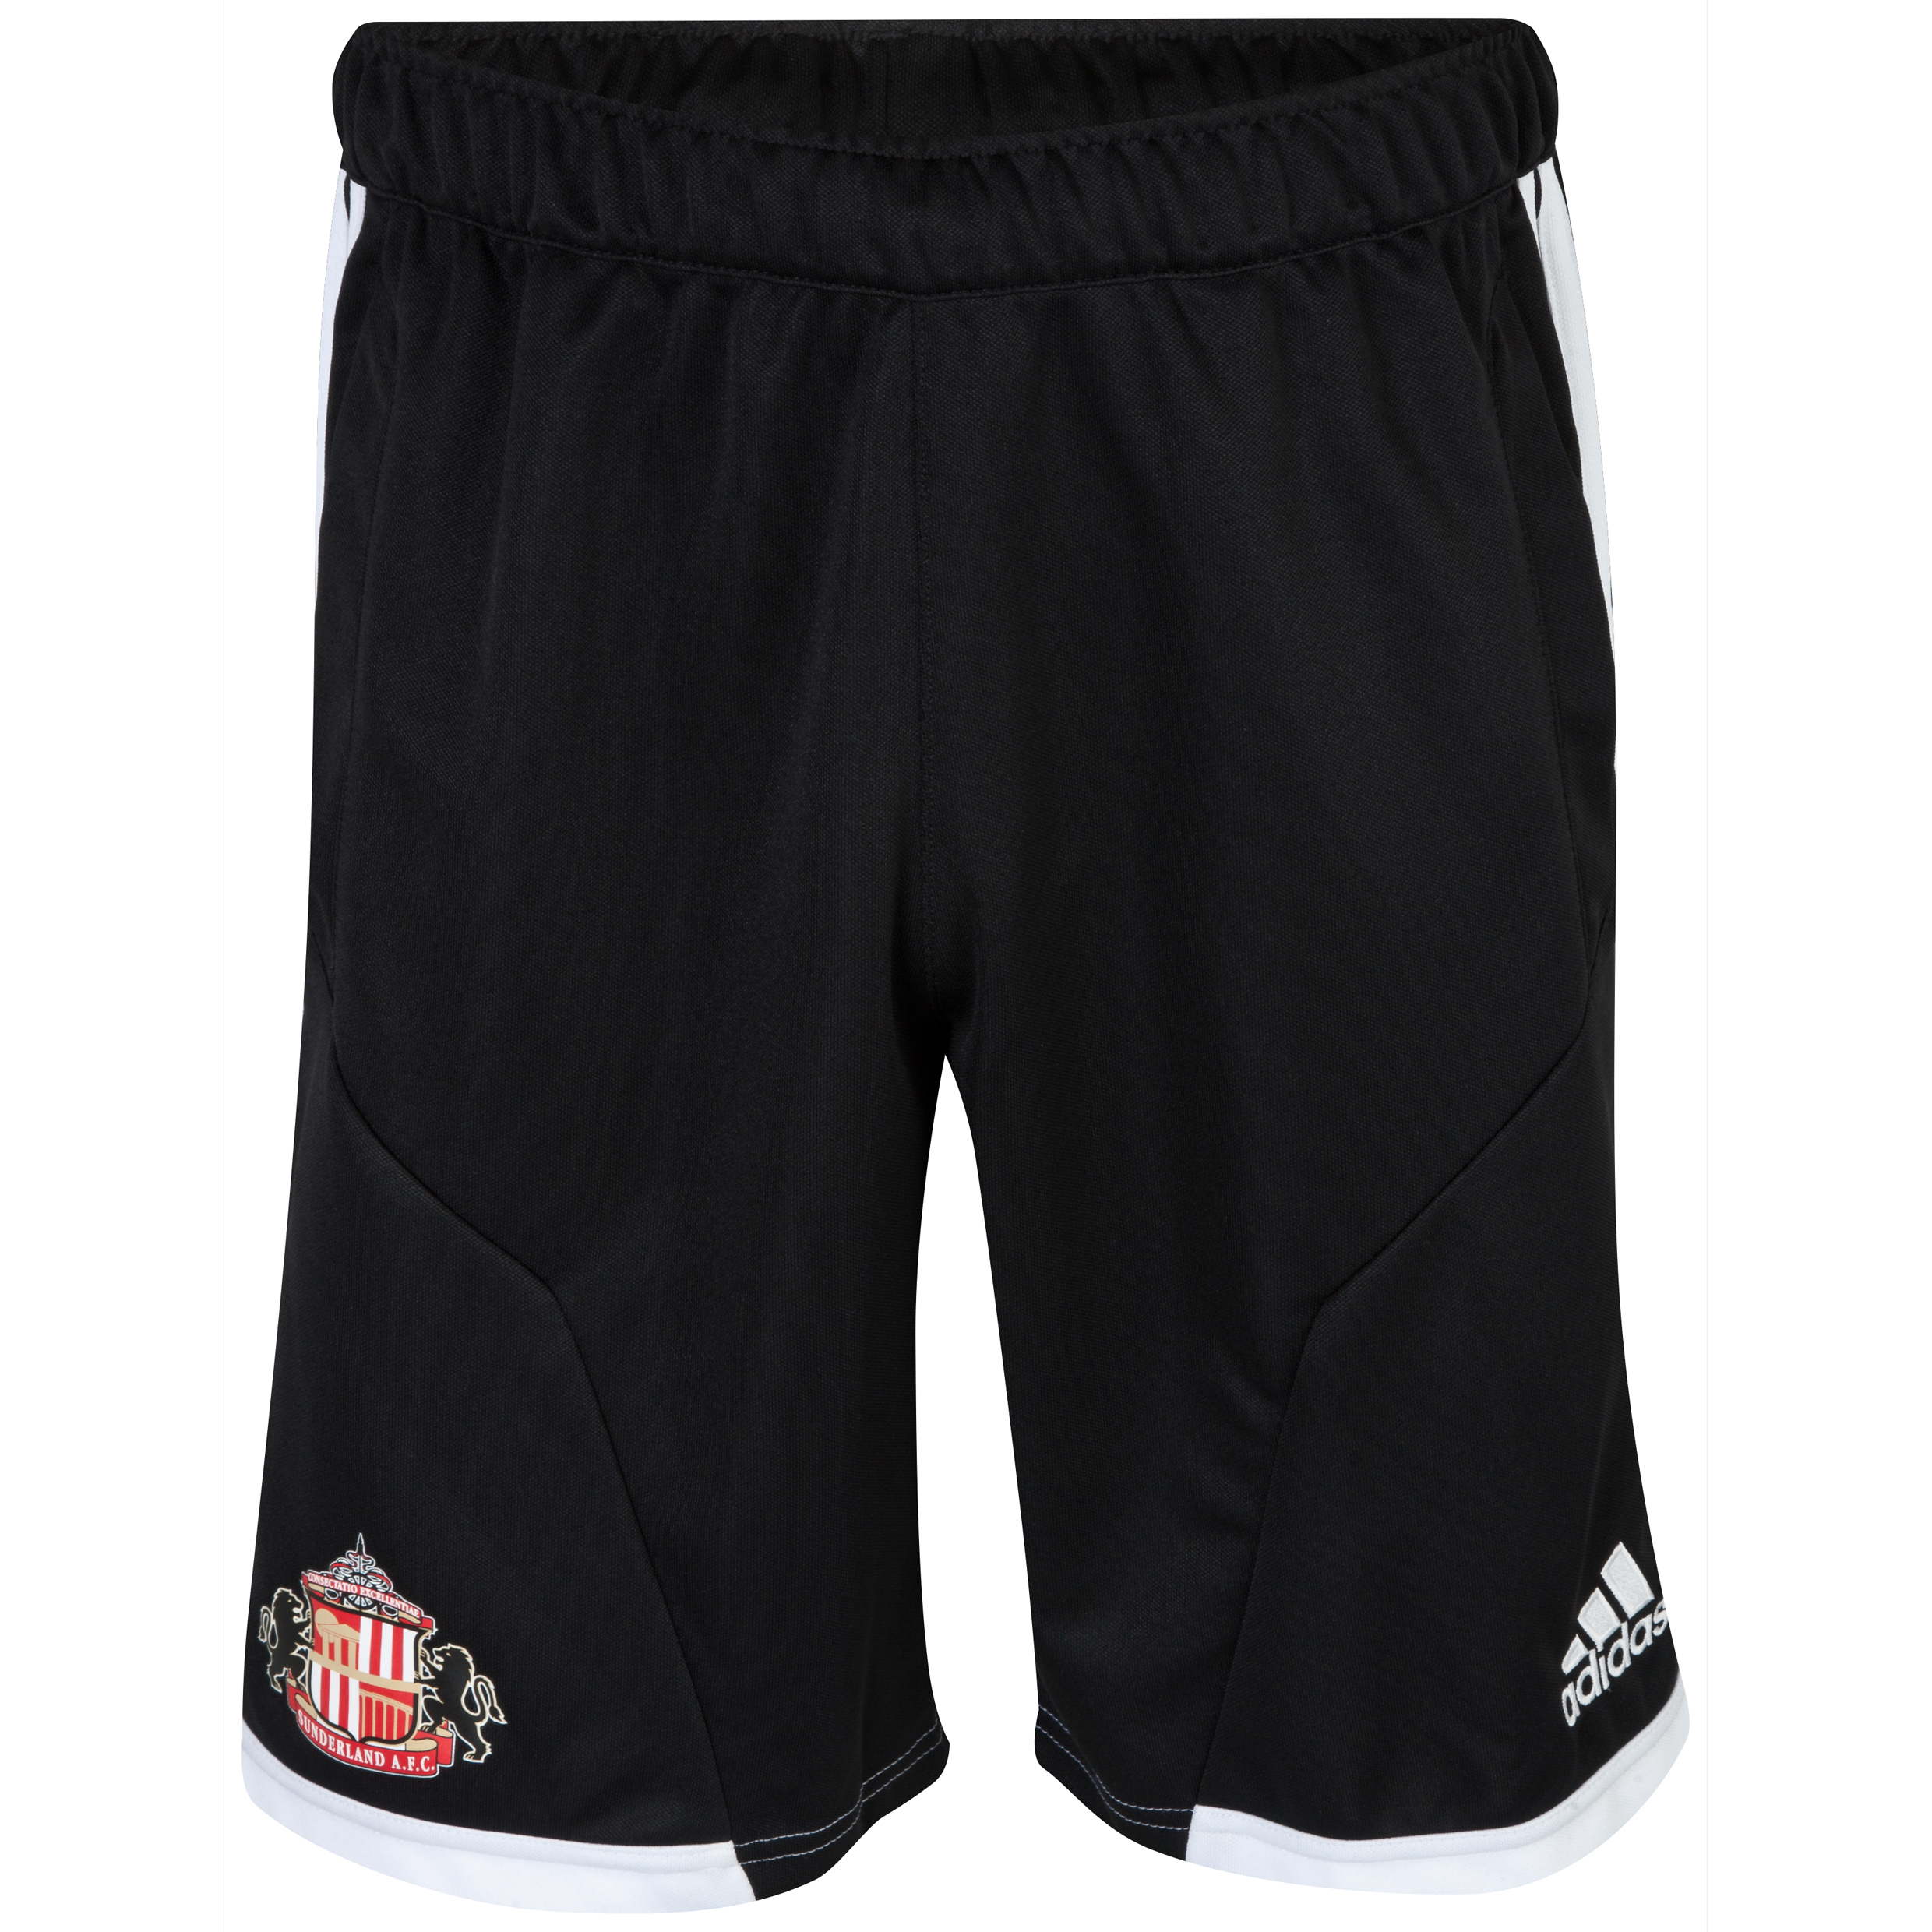 Sunderland Tiro Training Short Black